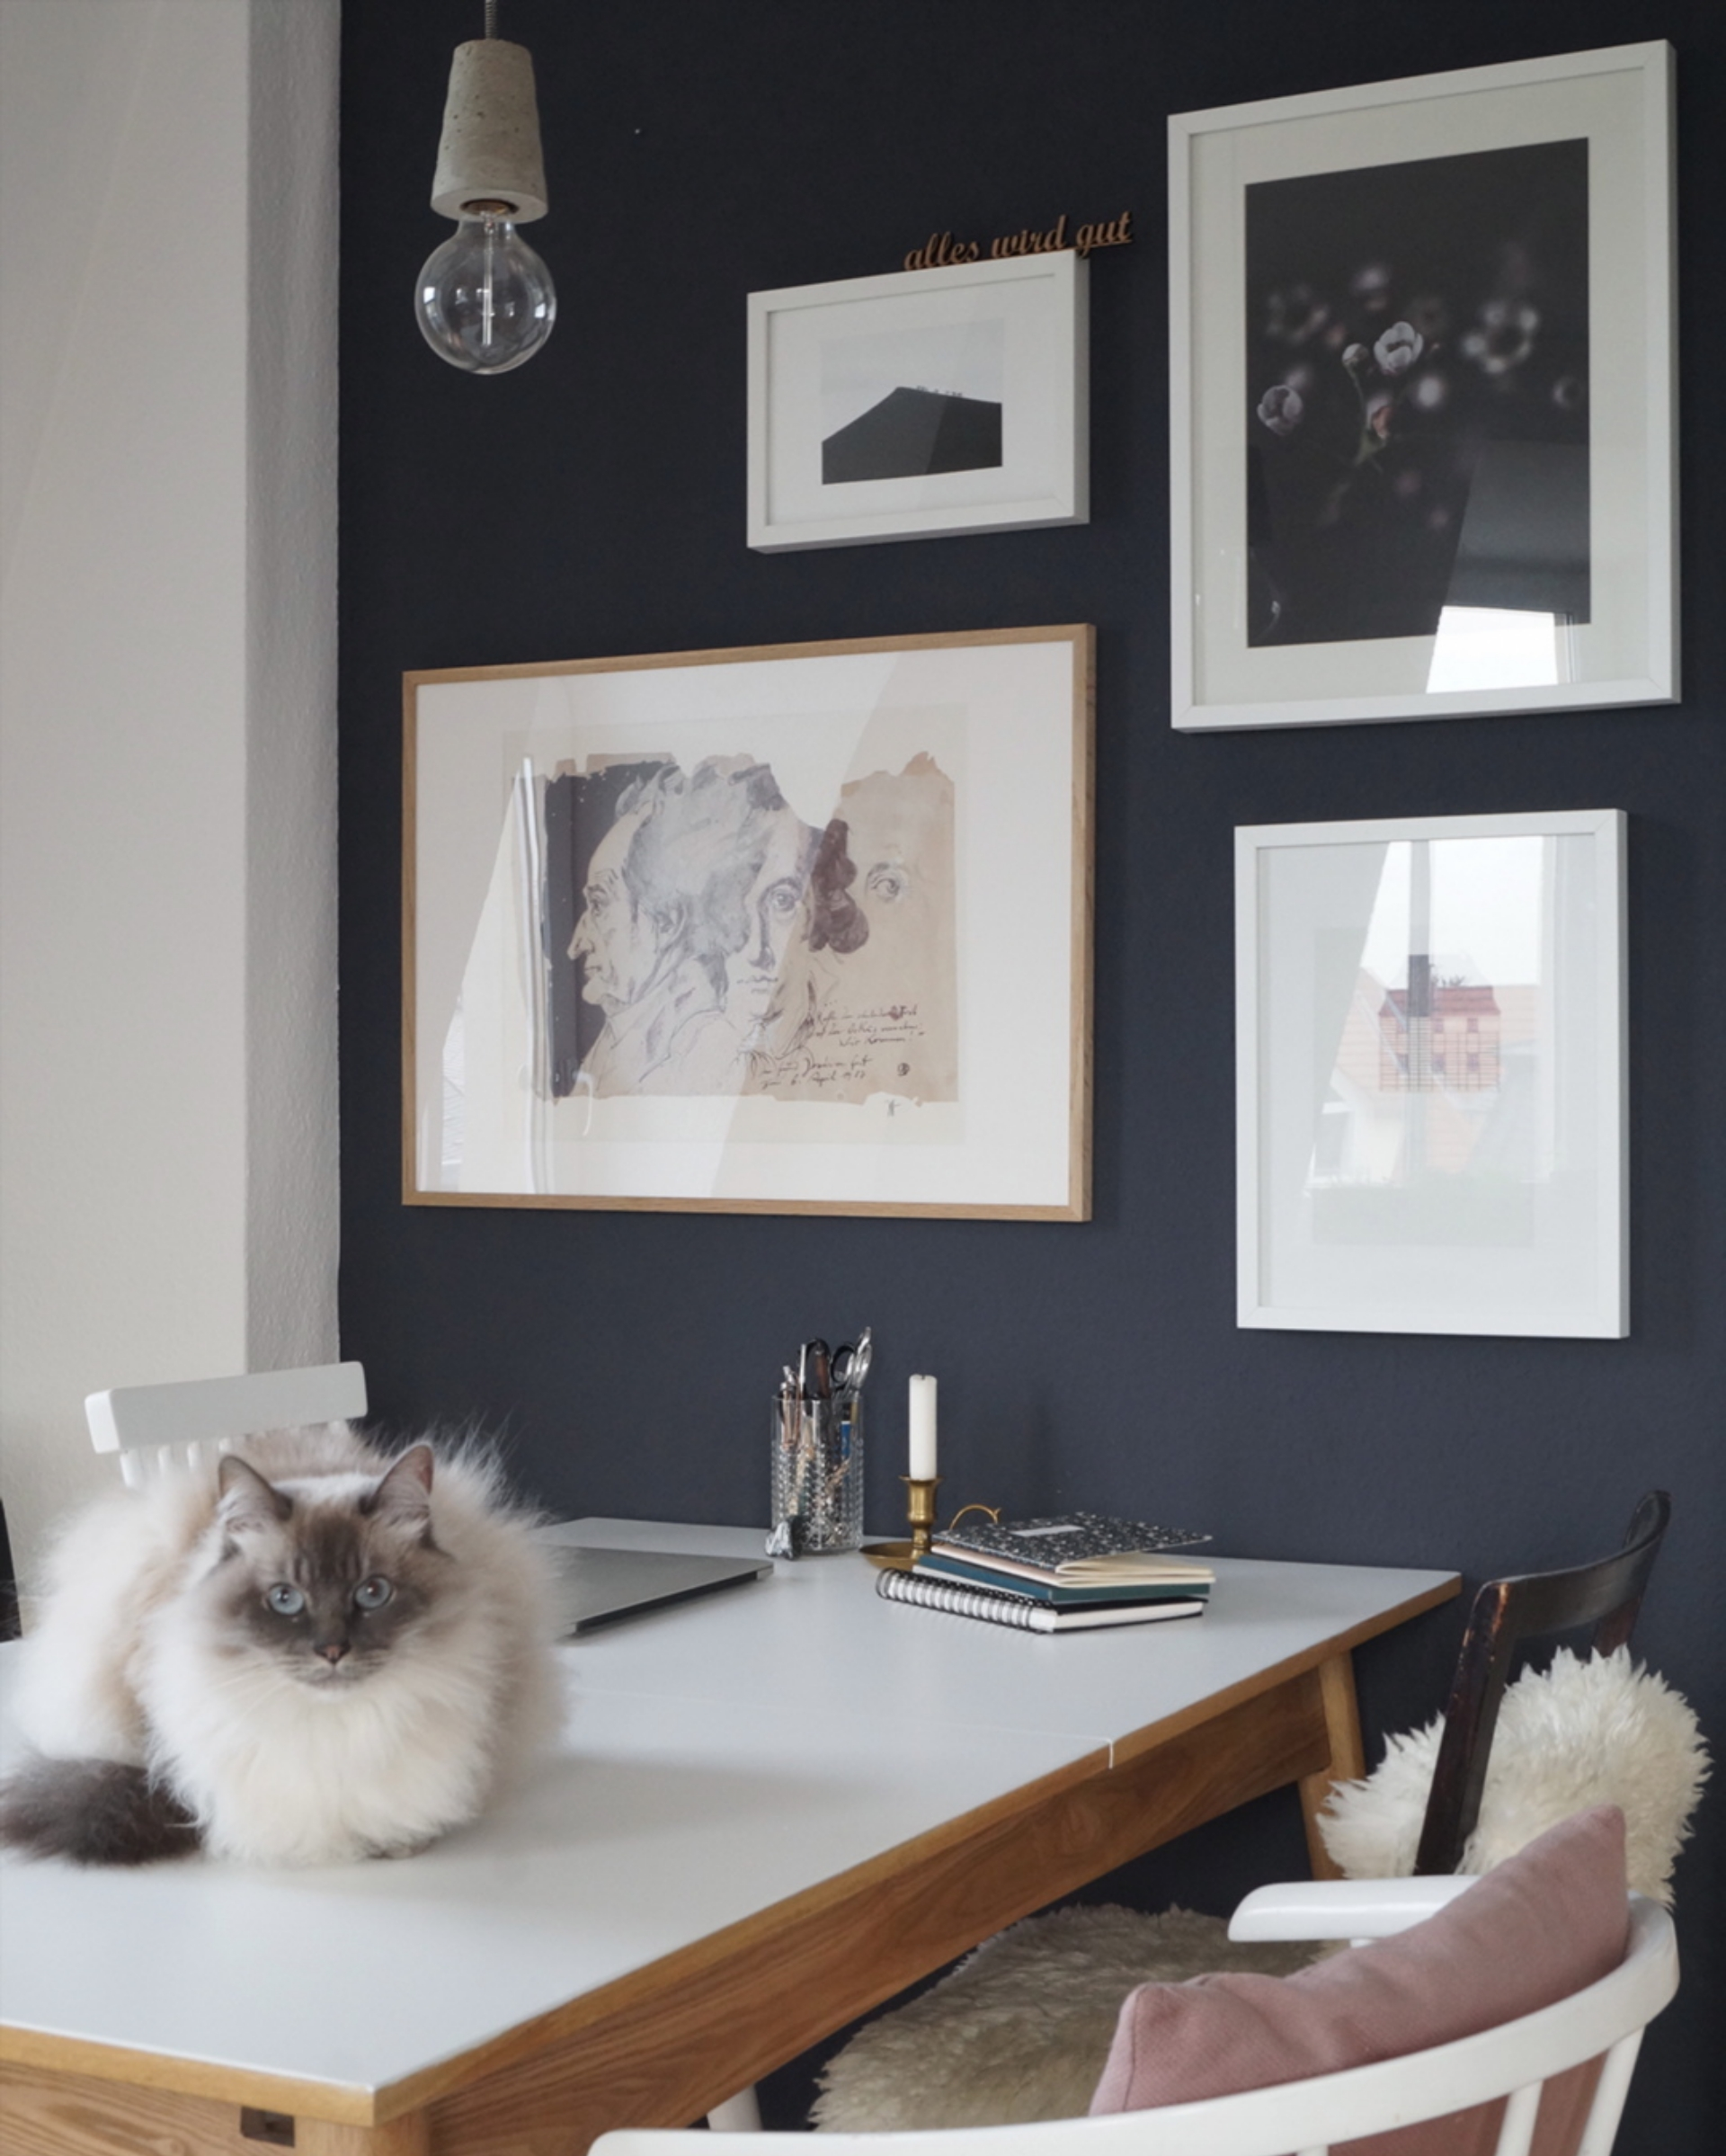 #livingroom #diningarea #workingspace #cat #artwall #darkwall